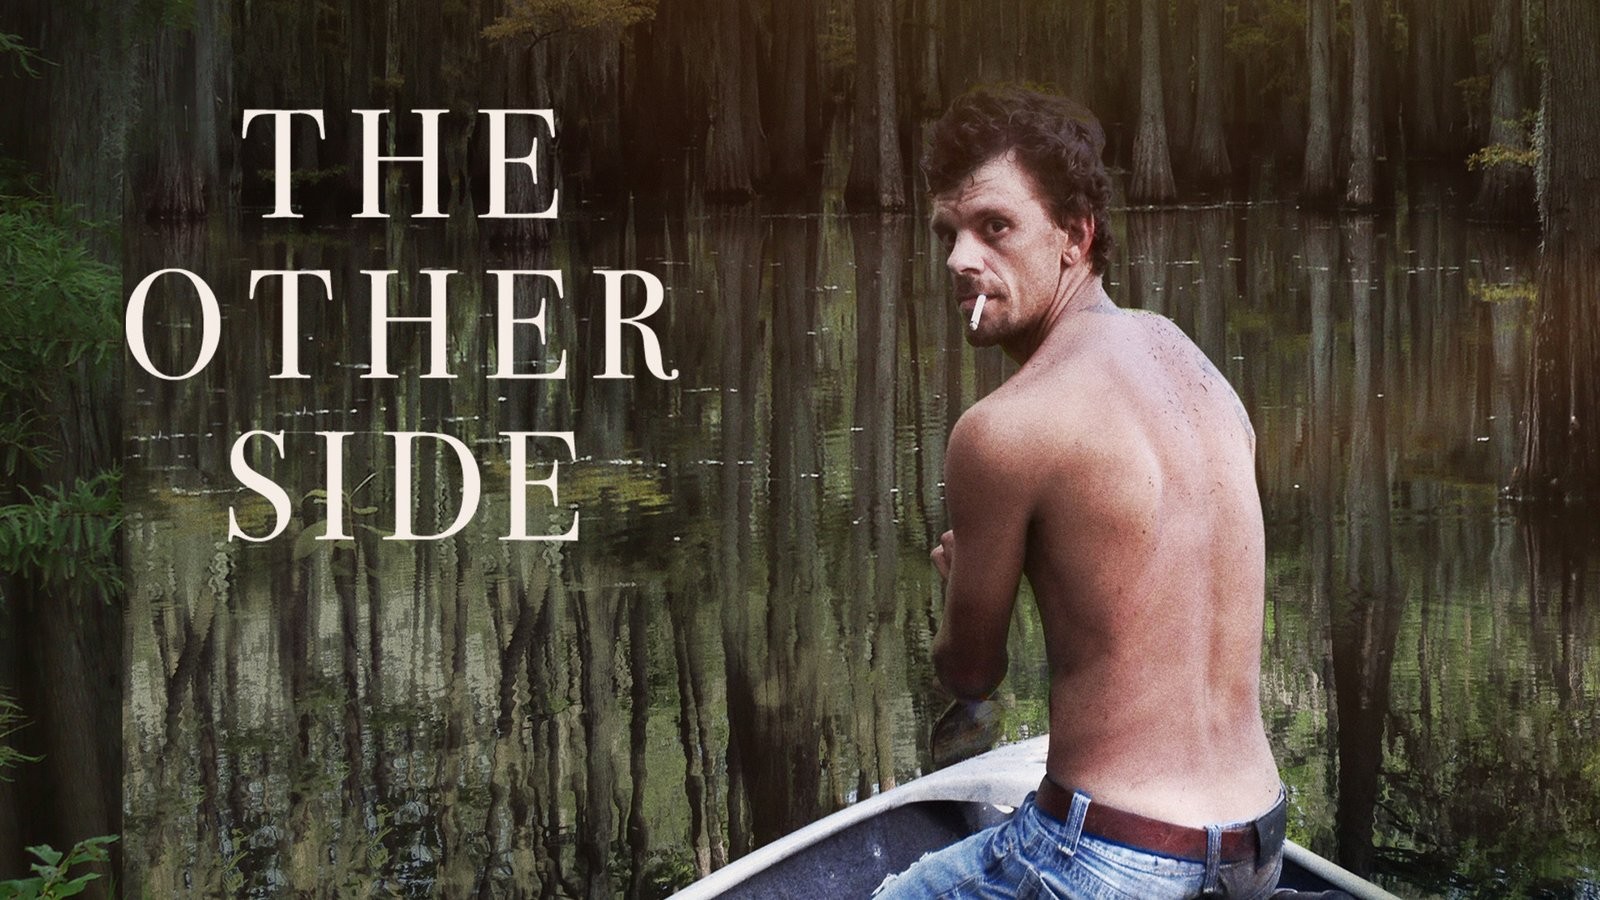 The Other Side - An Intimate Portrait of a Secluded Louisiana Community